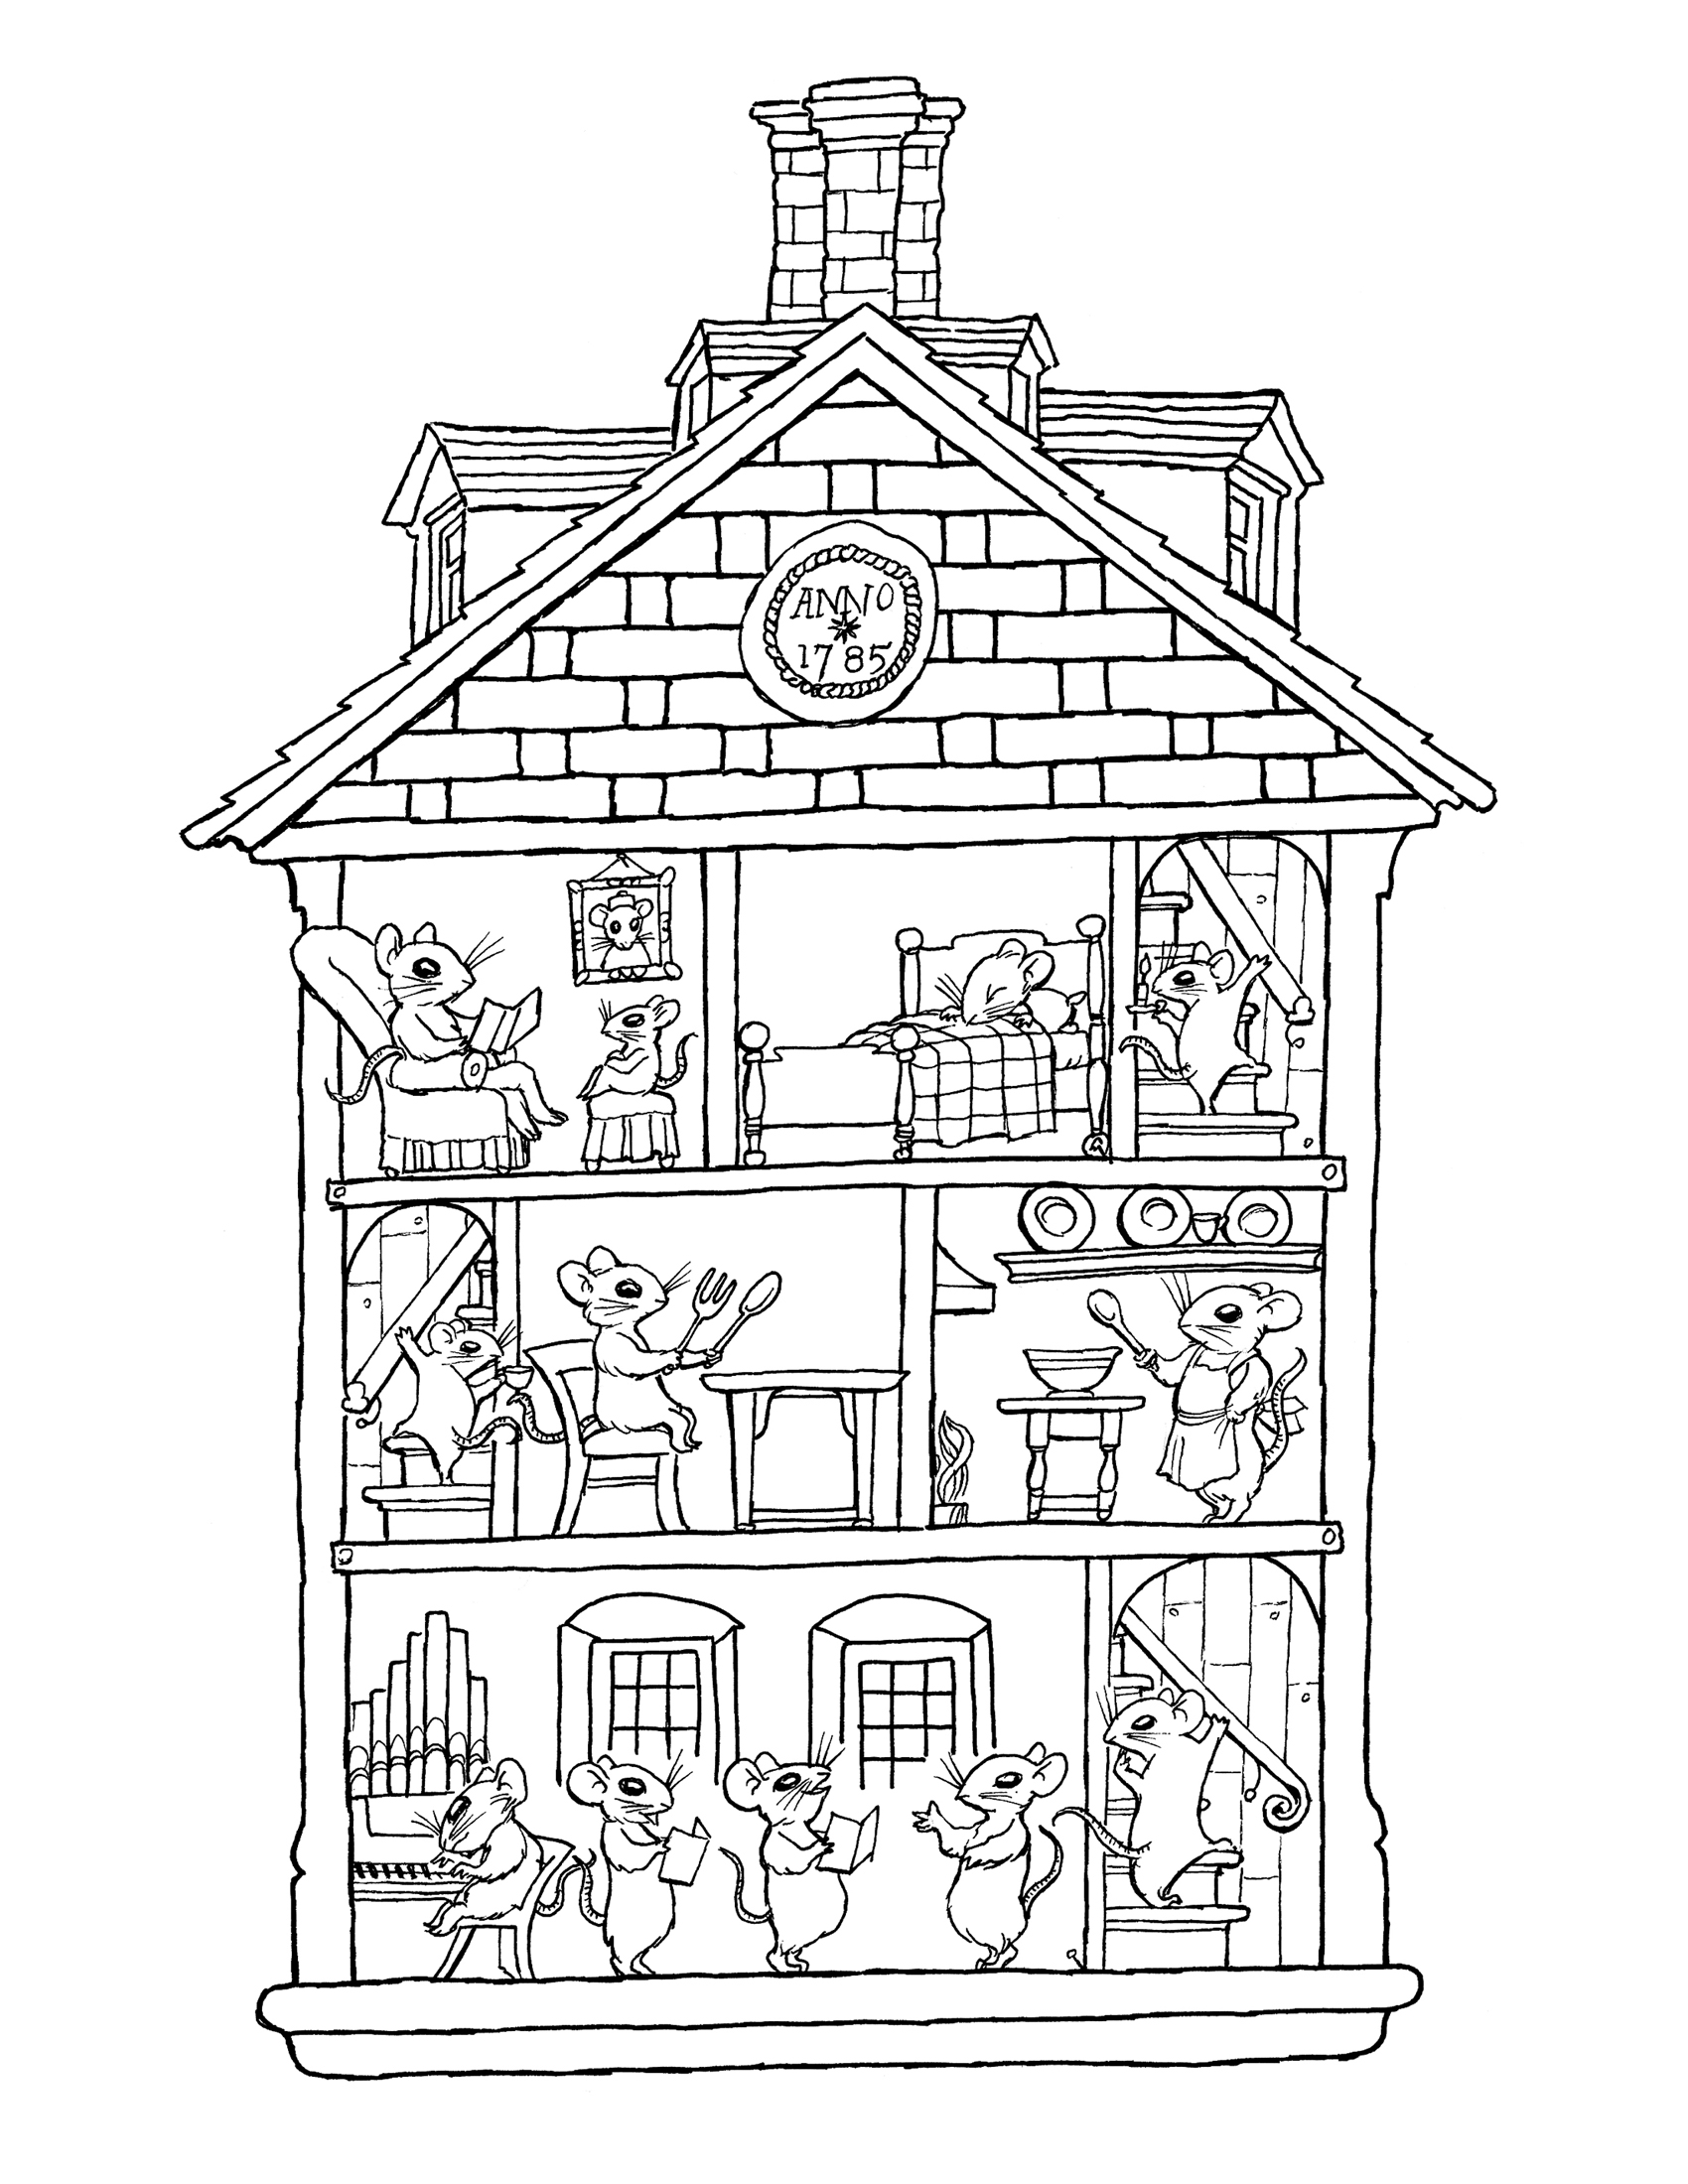 coloring pages houses inside a house drawing at getdrawings free download pages houses coloring